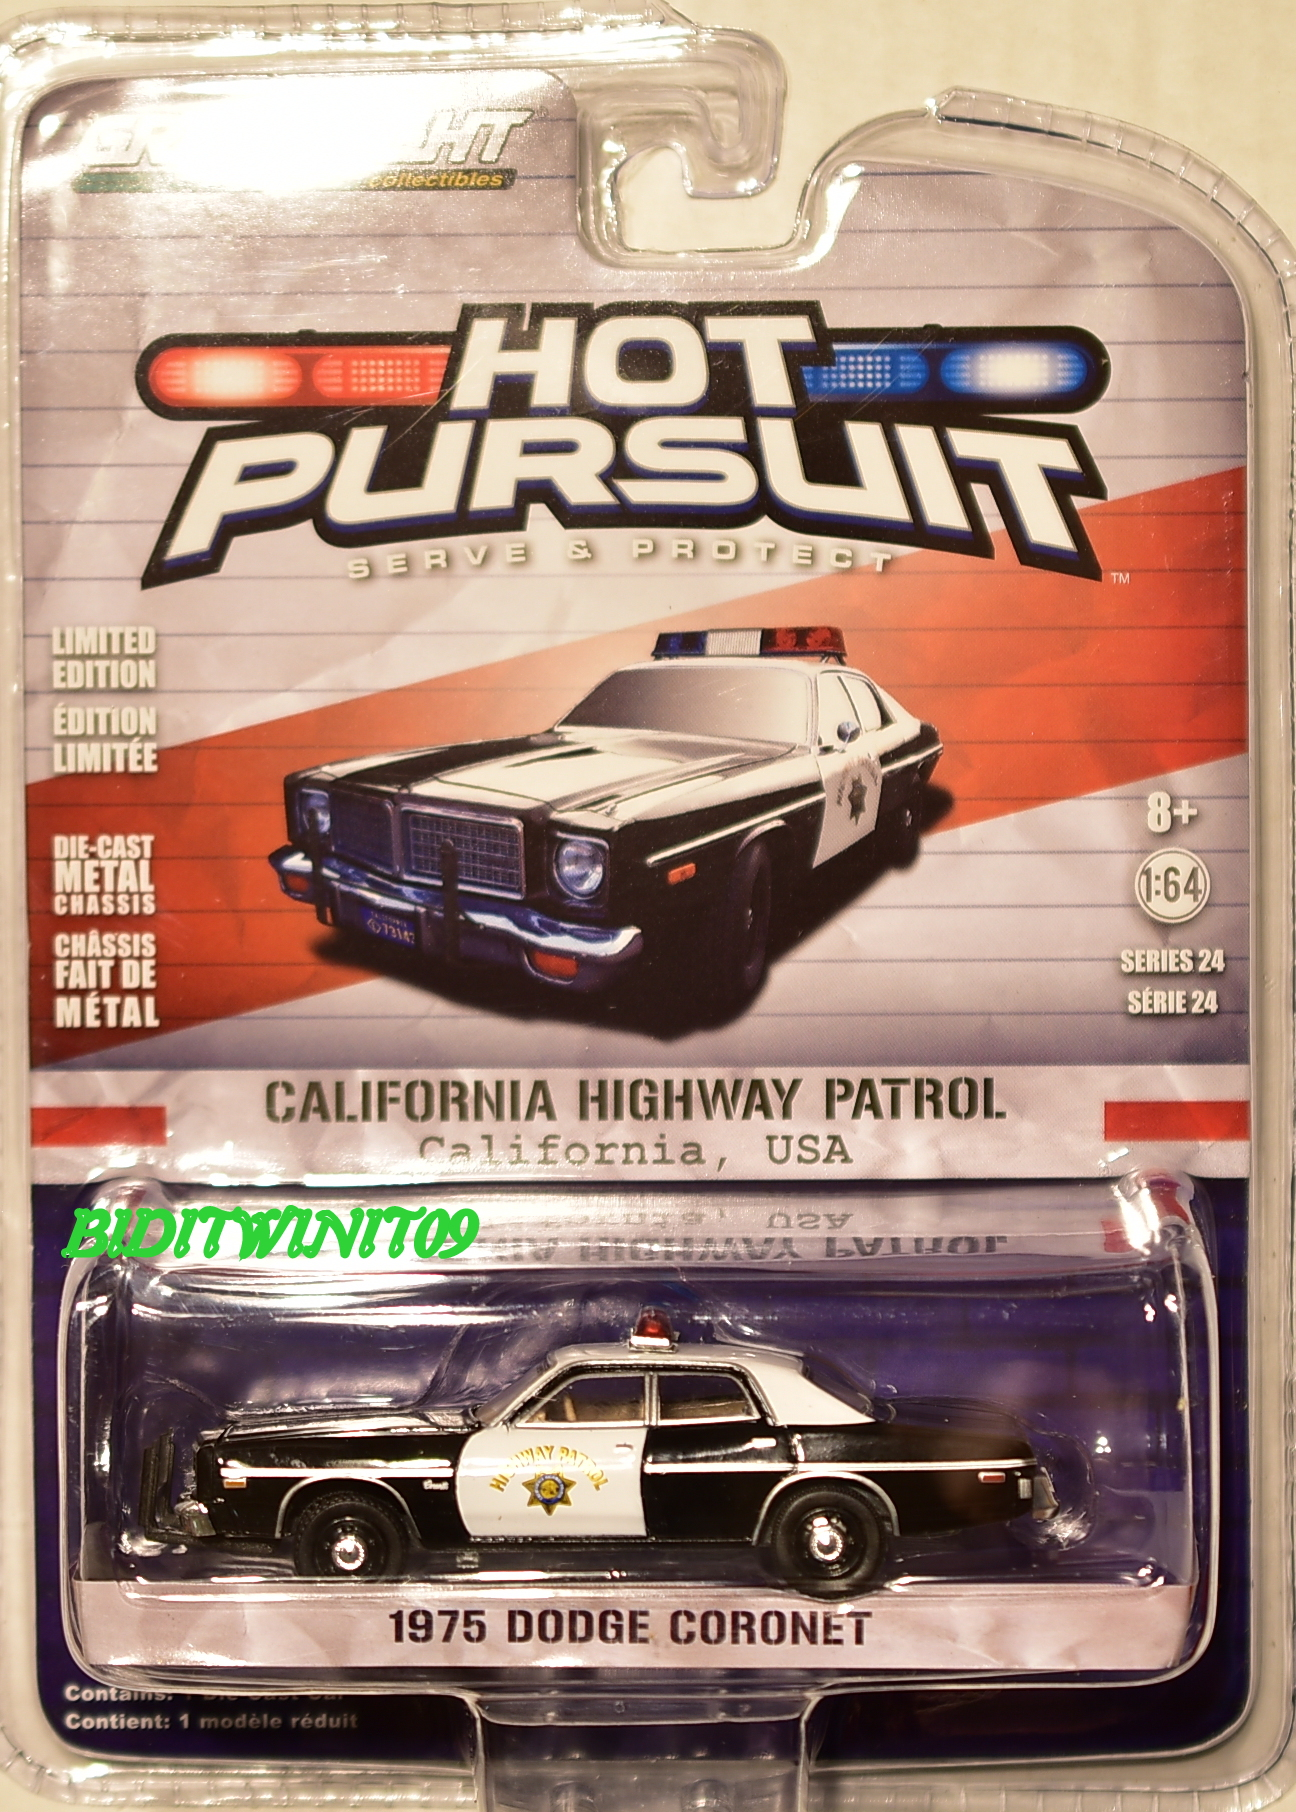 GREENLIGHT 2017 HOT PURSUIT SERIES 24 1975 DODGE CORONET SCALE 1:64